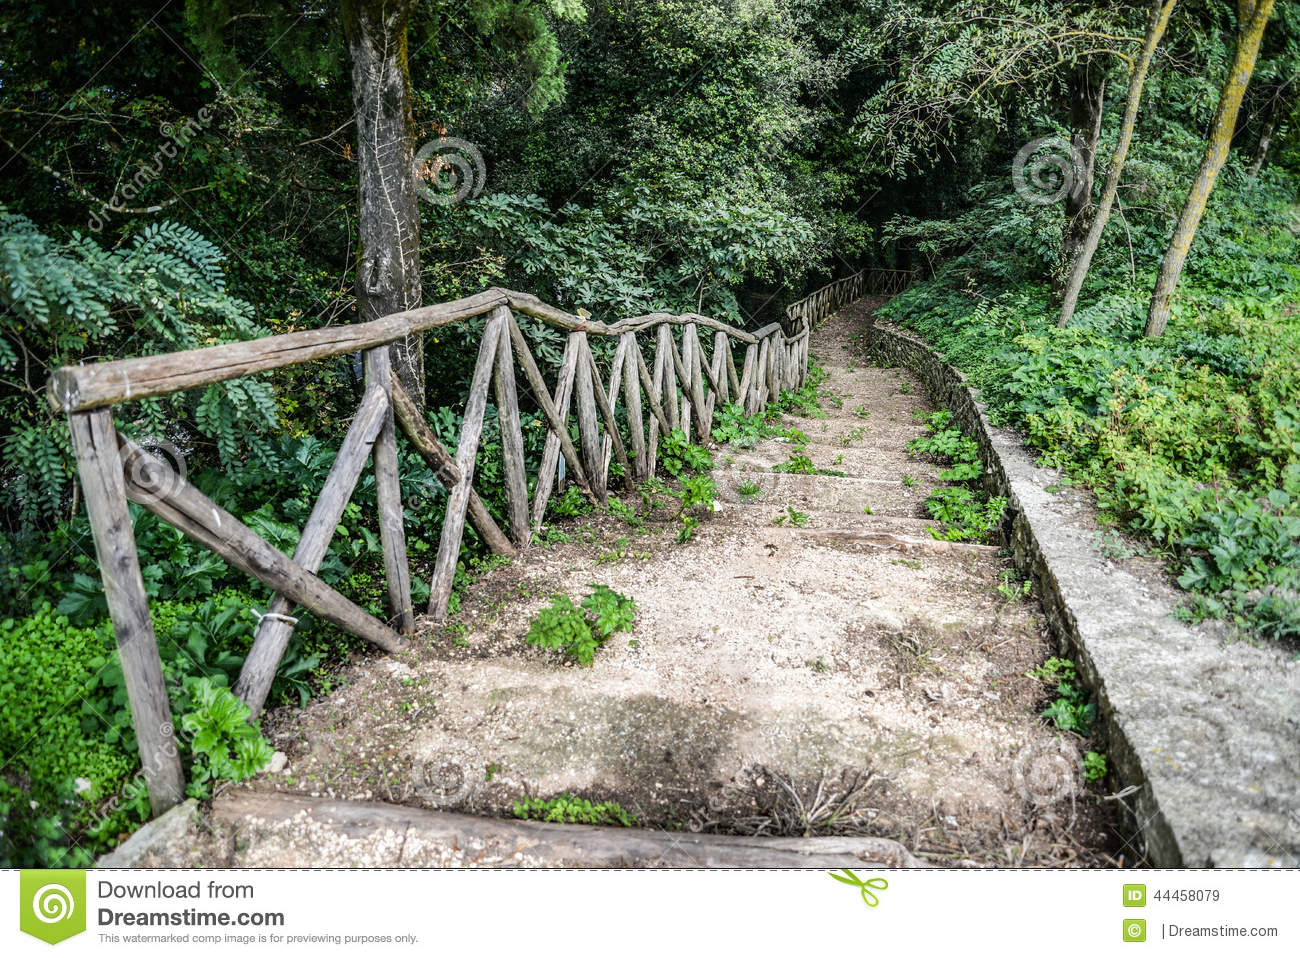 Wooden stairs / path through the forest